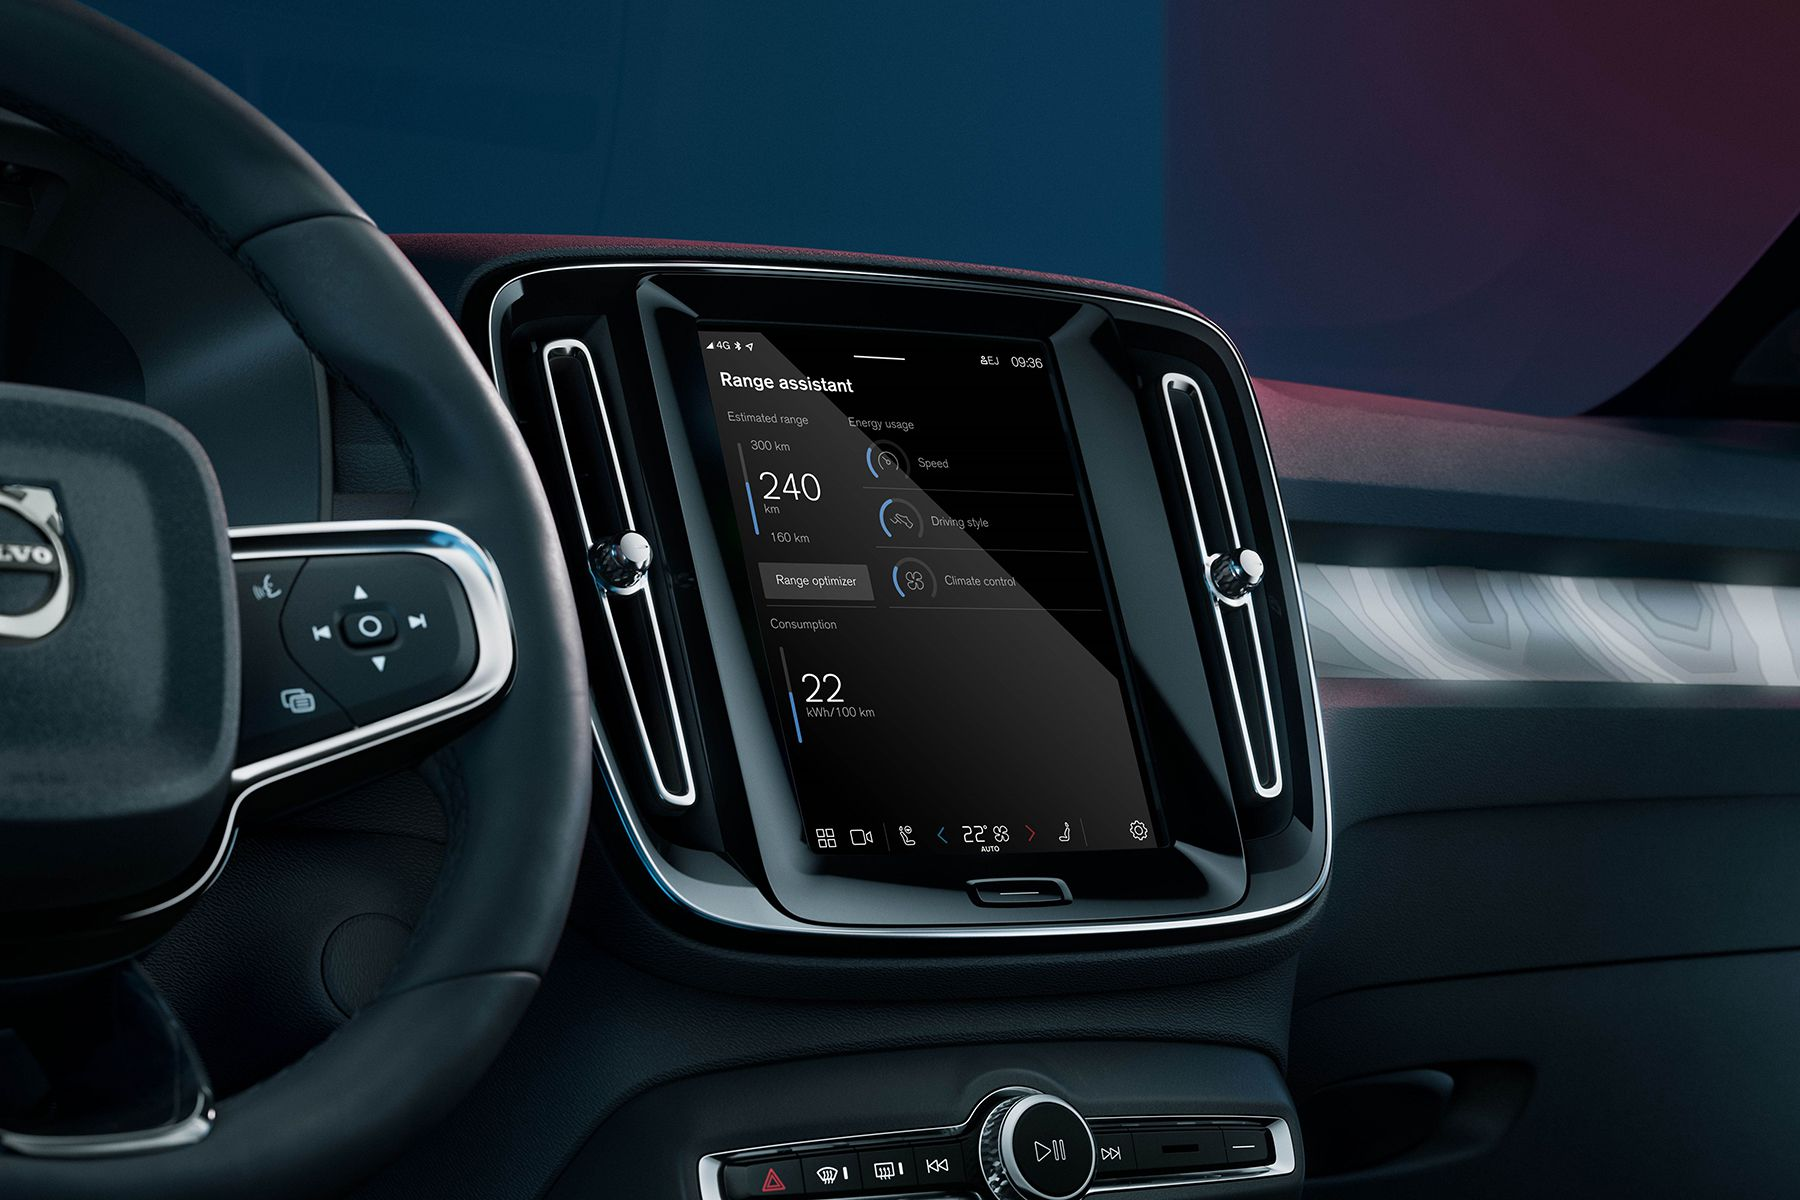 Volvo Cars' new Range Assistant app for fully electric cars